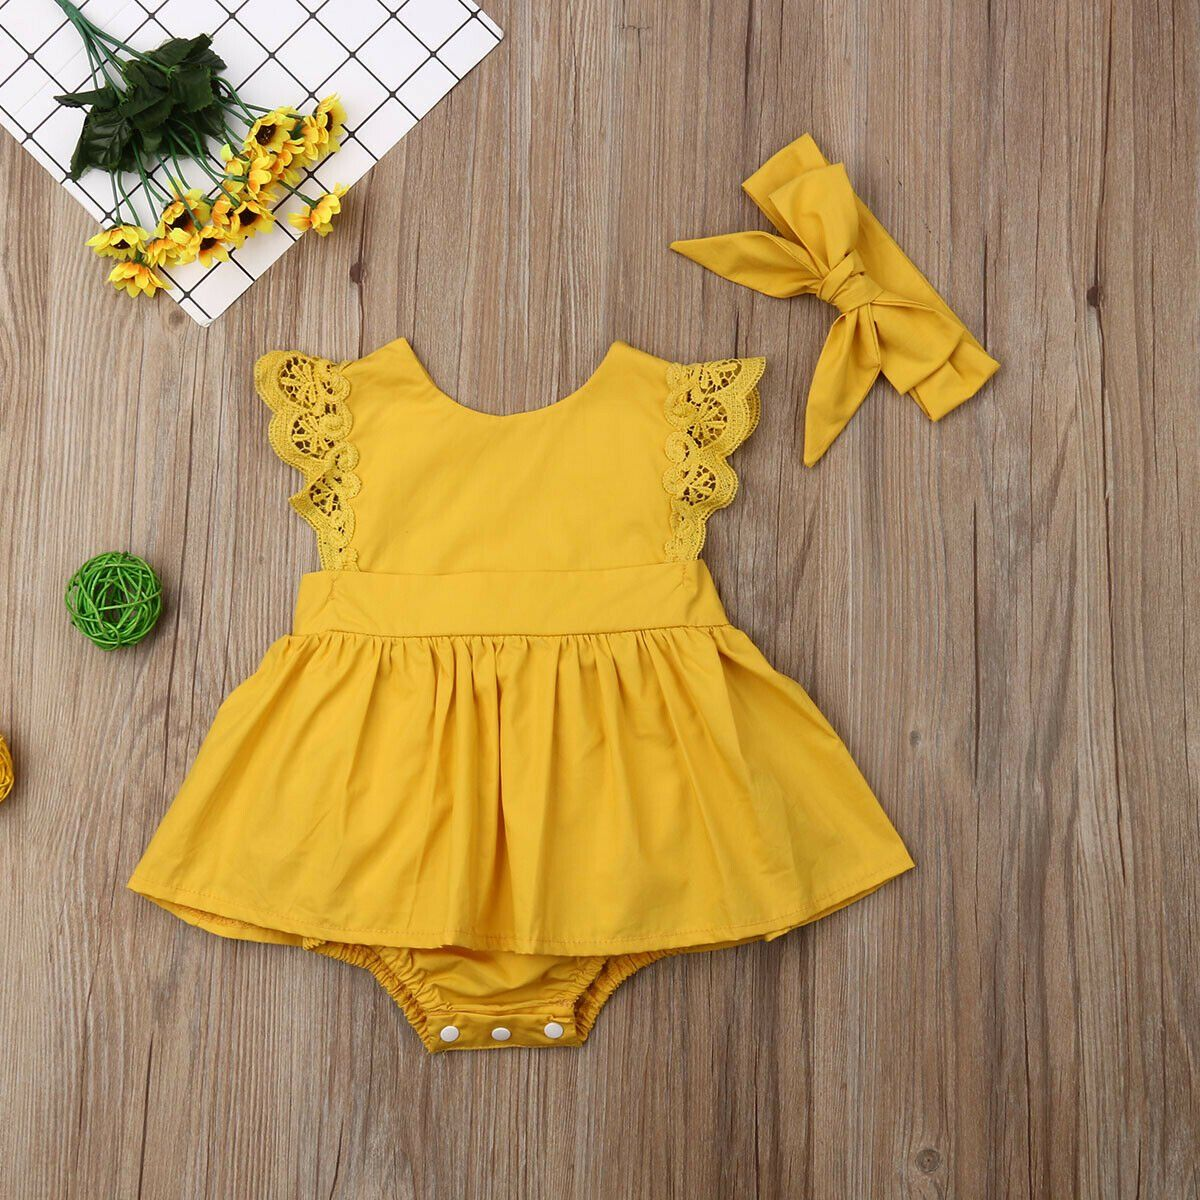 Calsunbaby Newborn Kid Baby Girls Lace Clothes Dress Romper Jumpsuit Bodysuit Headband Outfit Set Walmart Com In 2021 Baby Girl Yellow Dress Outfit Set Girls Summer Outfits [ 1200 x 1200 Pixel ]